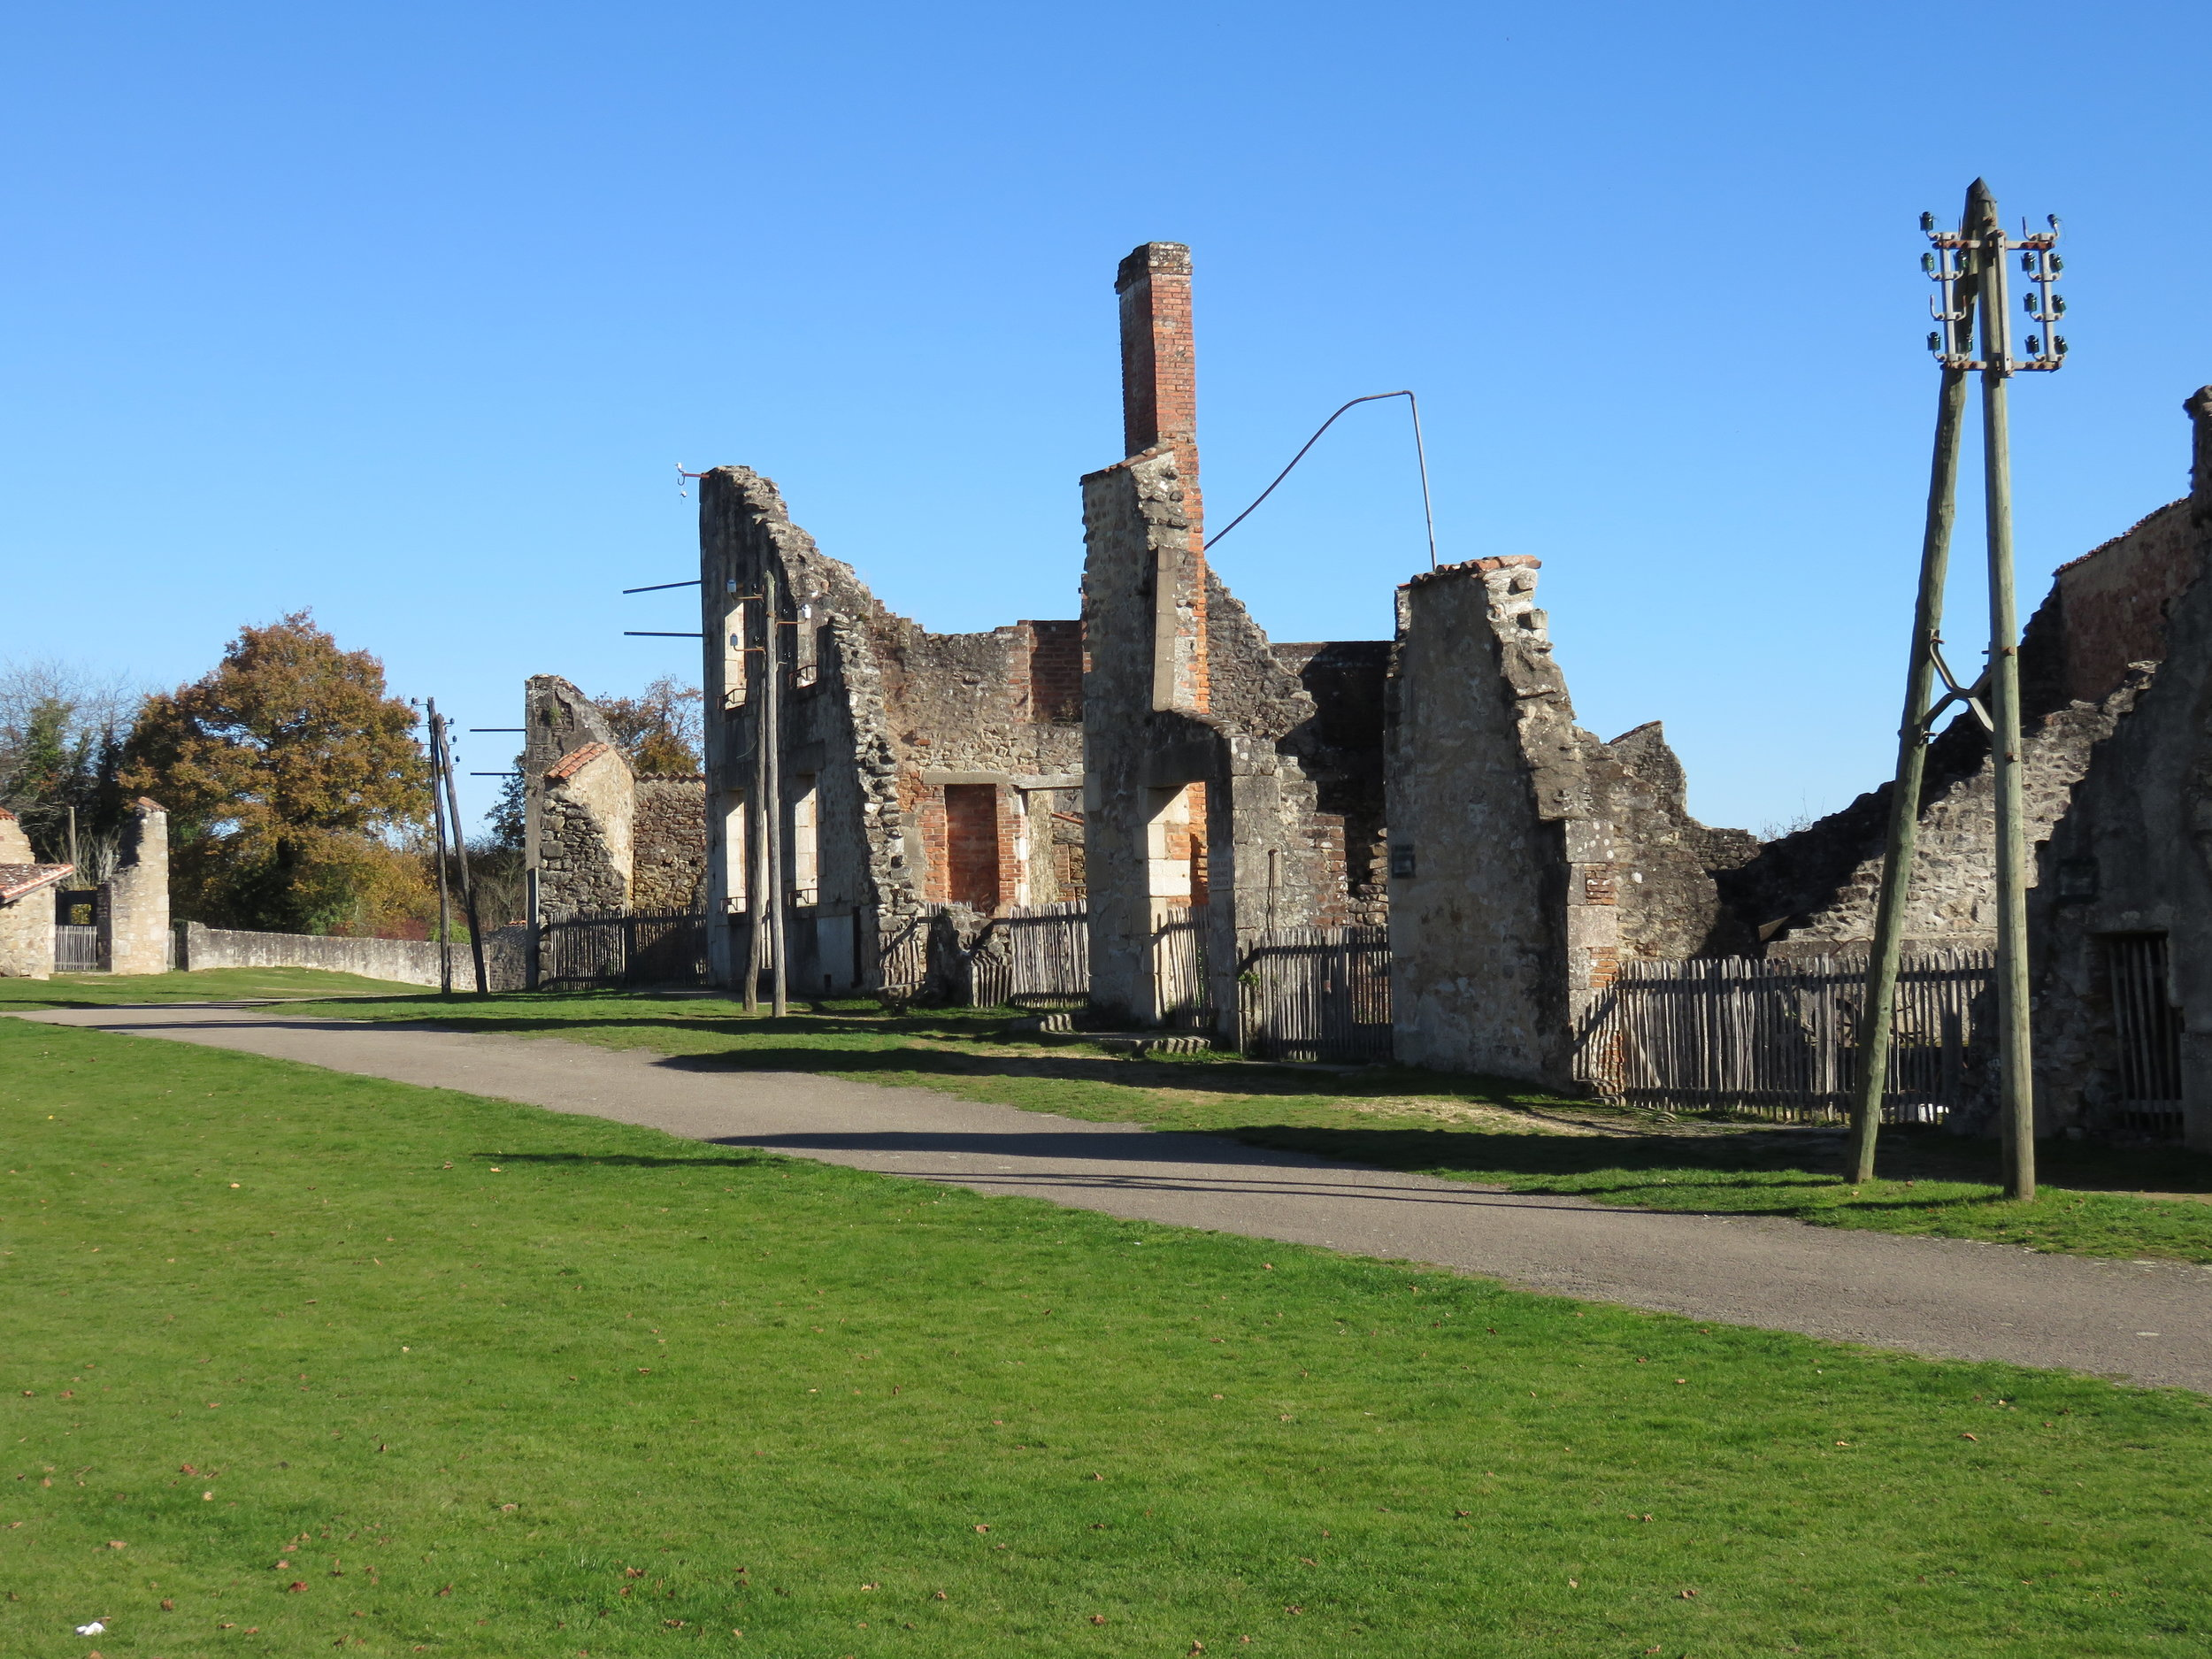 We take a side trip on our way to Normandy to Oradour-sur-Glane, site of a senseless Nazi massacre of an entire village.